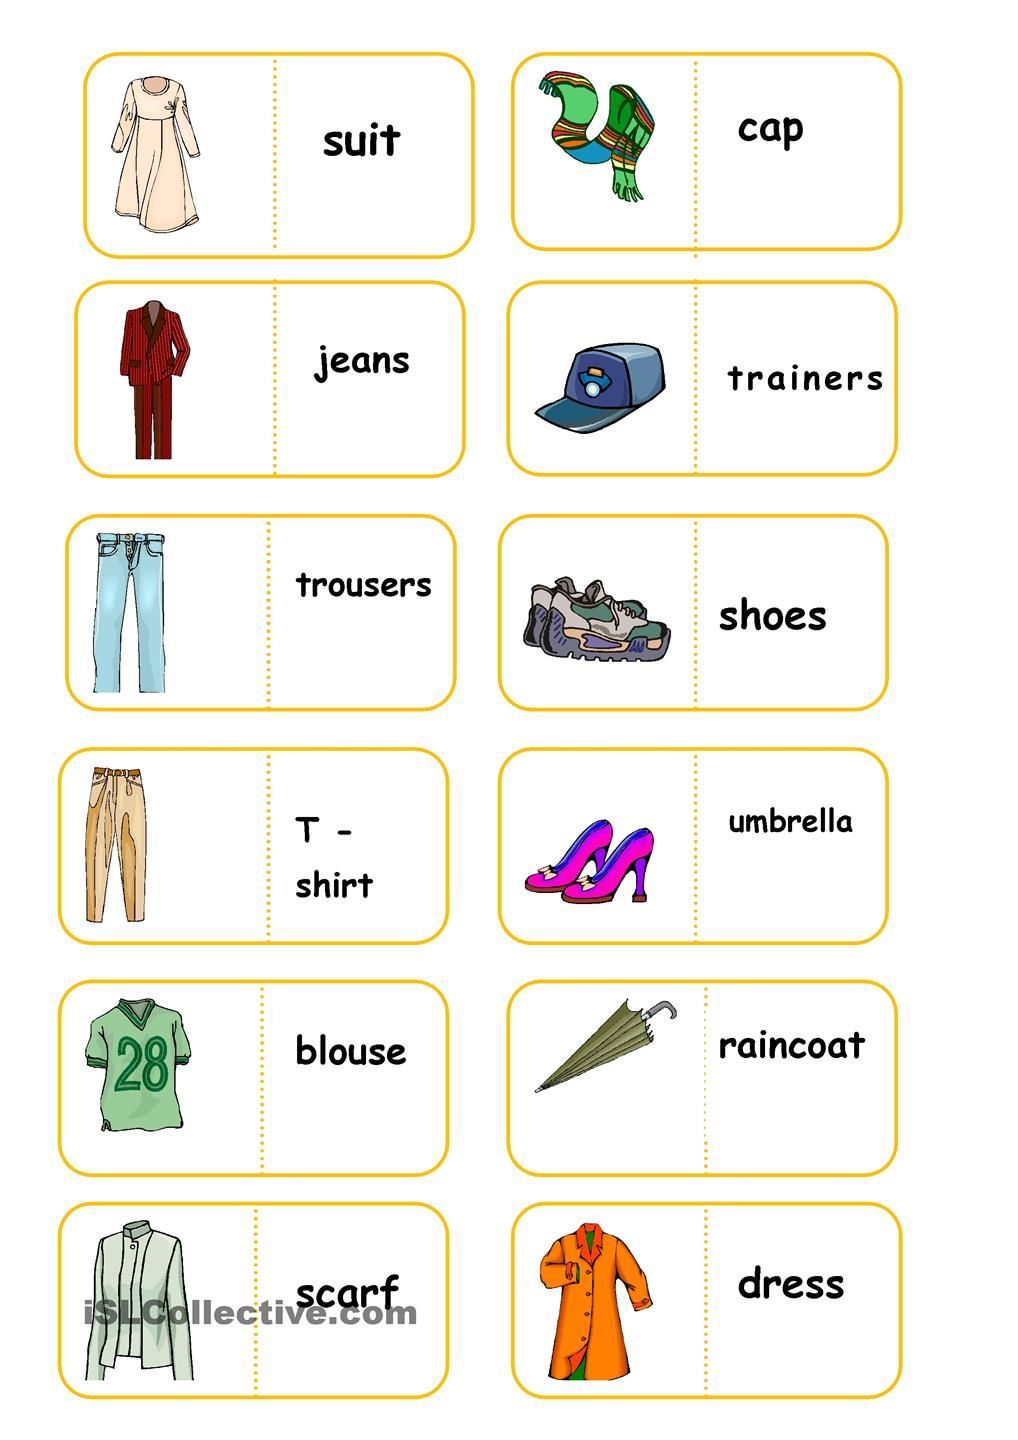 Printables Free Esl Worksheets For Beginners clothes board game worksheet free esl printable worksheets made domino by teachers